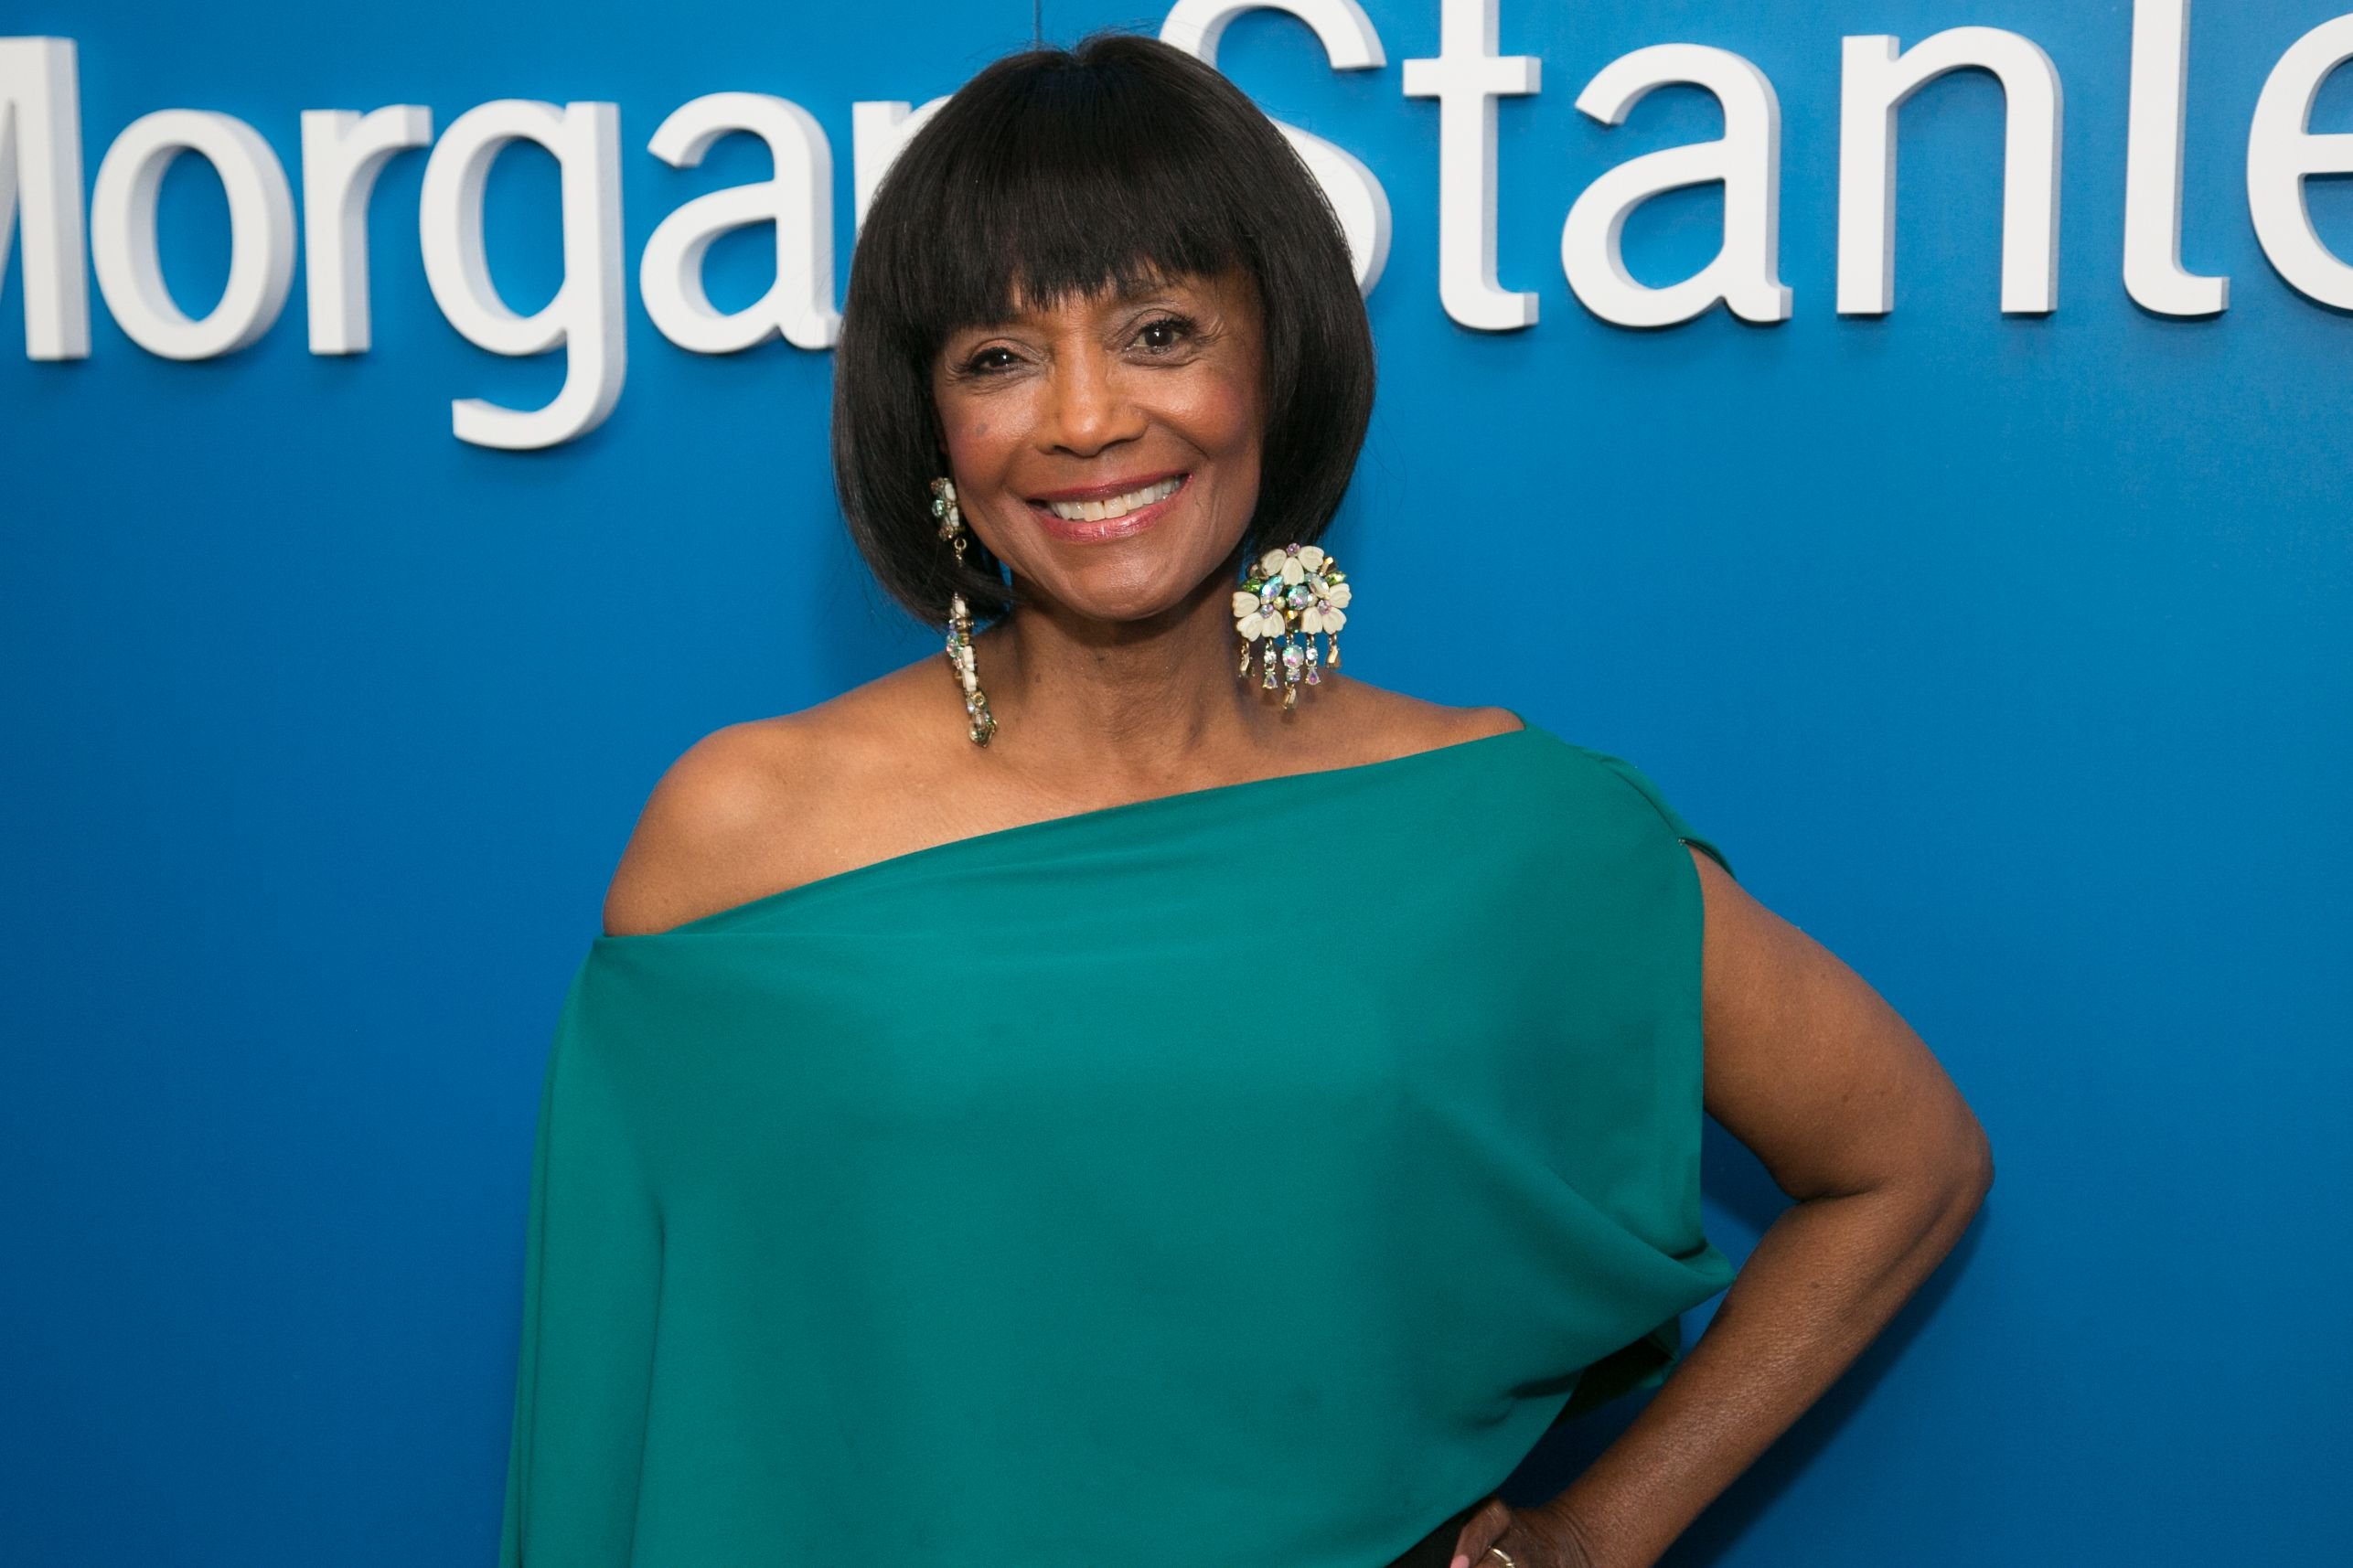 """Margaret Avery attends """"Alfre Woodard and Morgan Stanley present the 9th Annual Oscar's Sistahs Soiree"""" on February 28, 2018 in Los Angeles, California. 